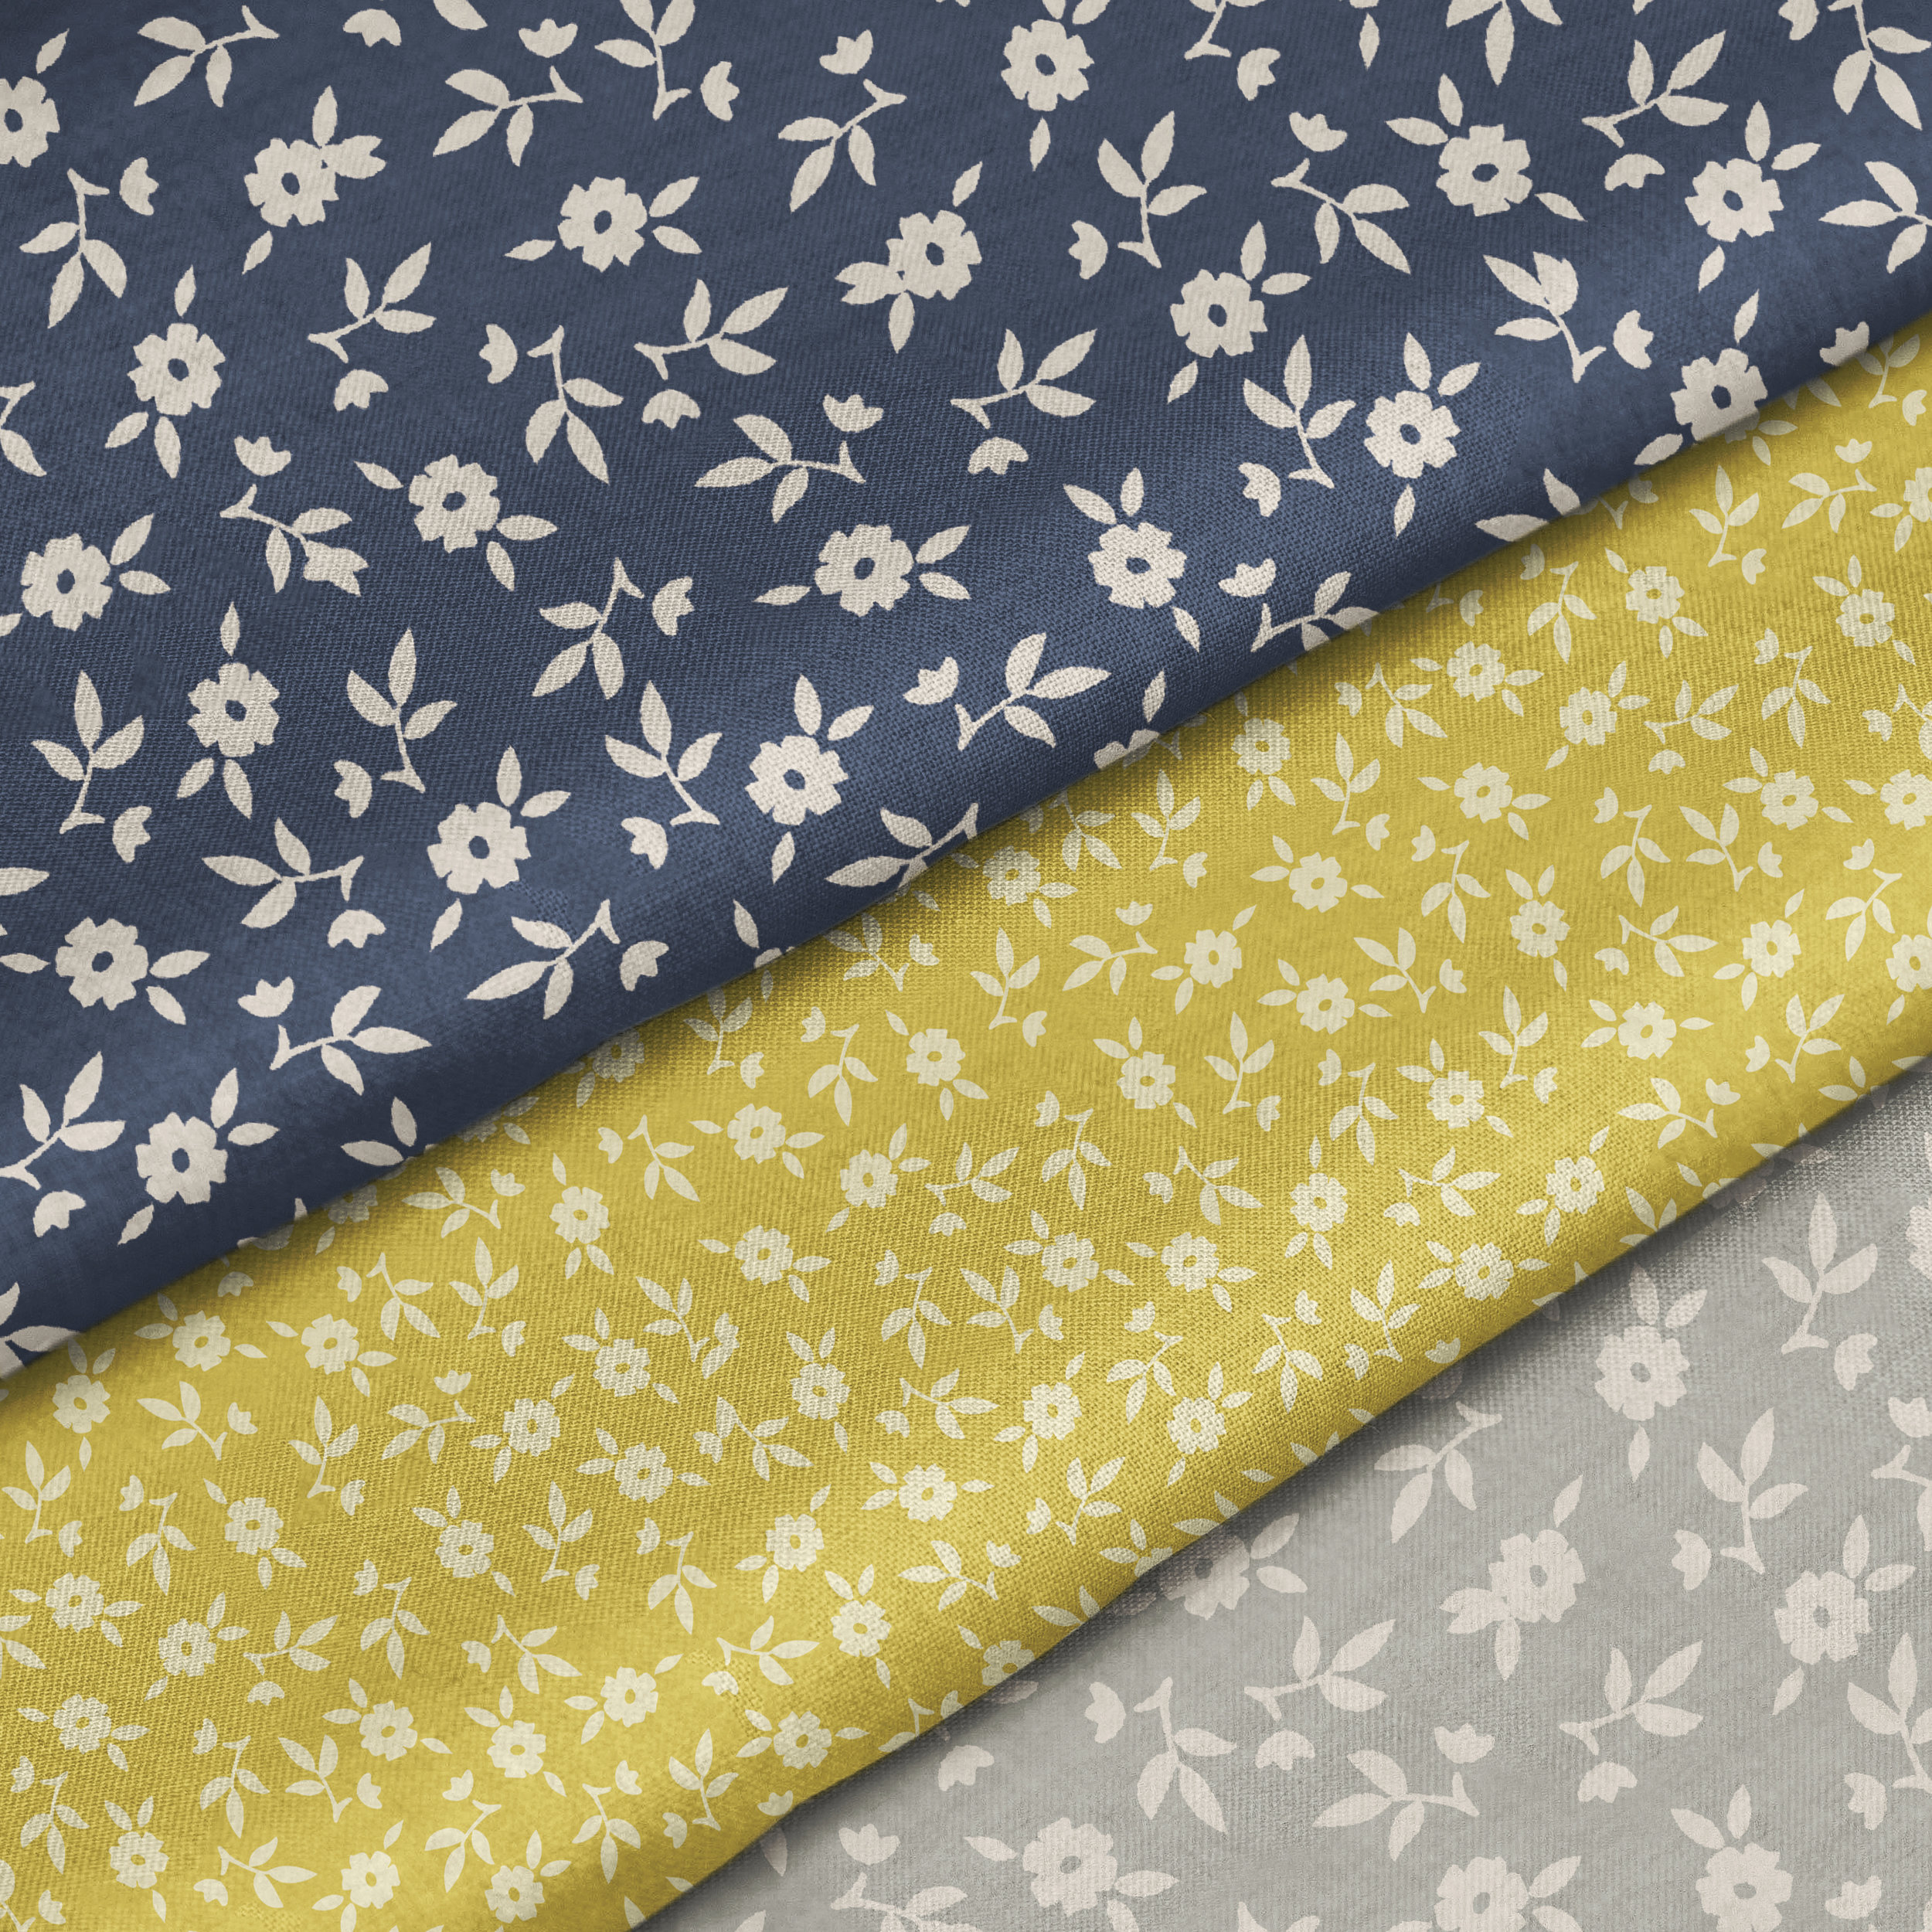 COUNTRY FLOWERS FABRIC SAMPLES